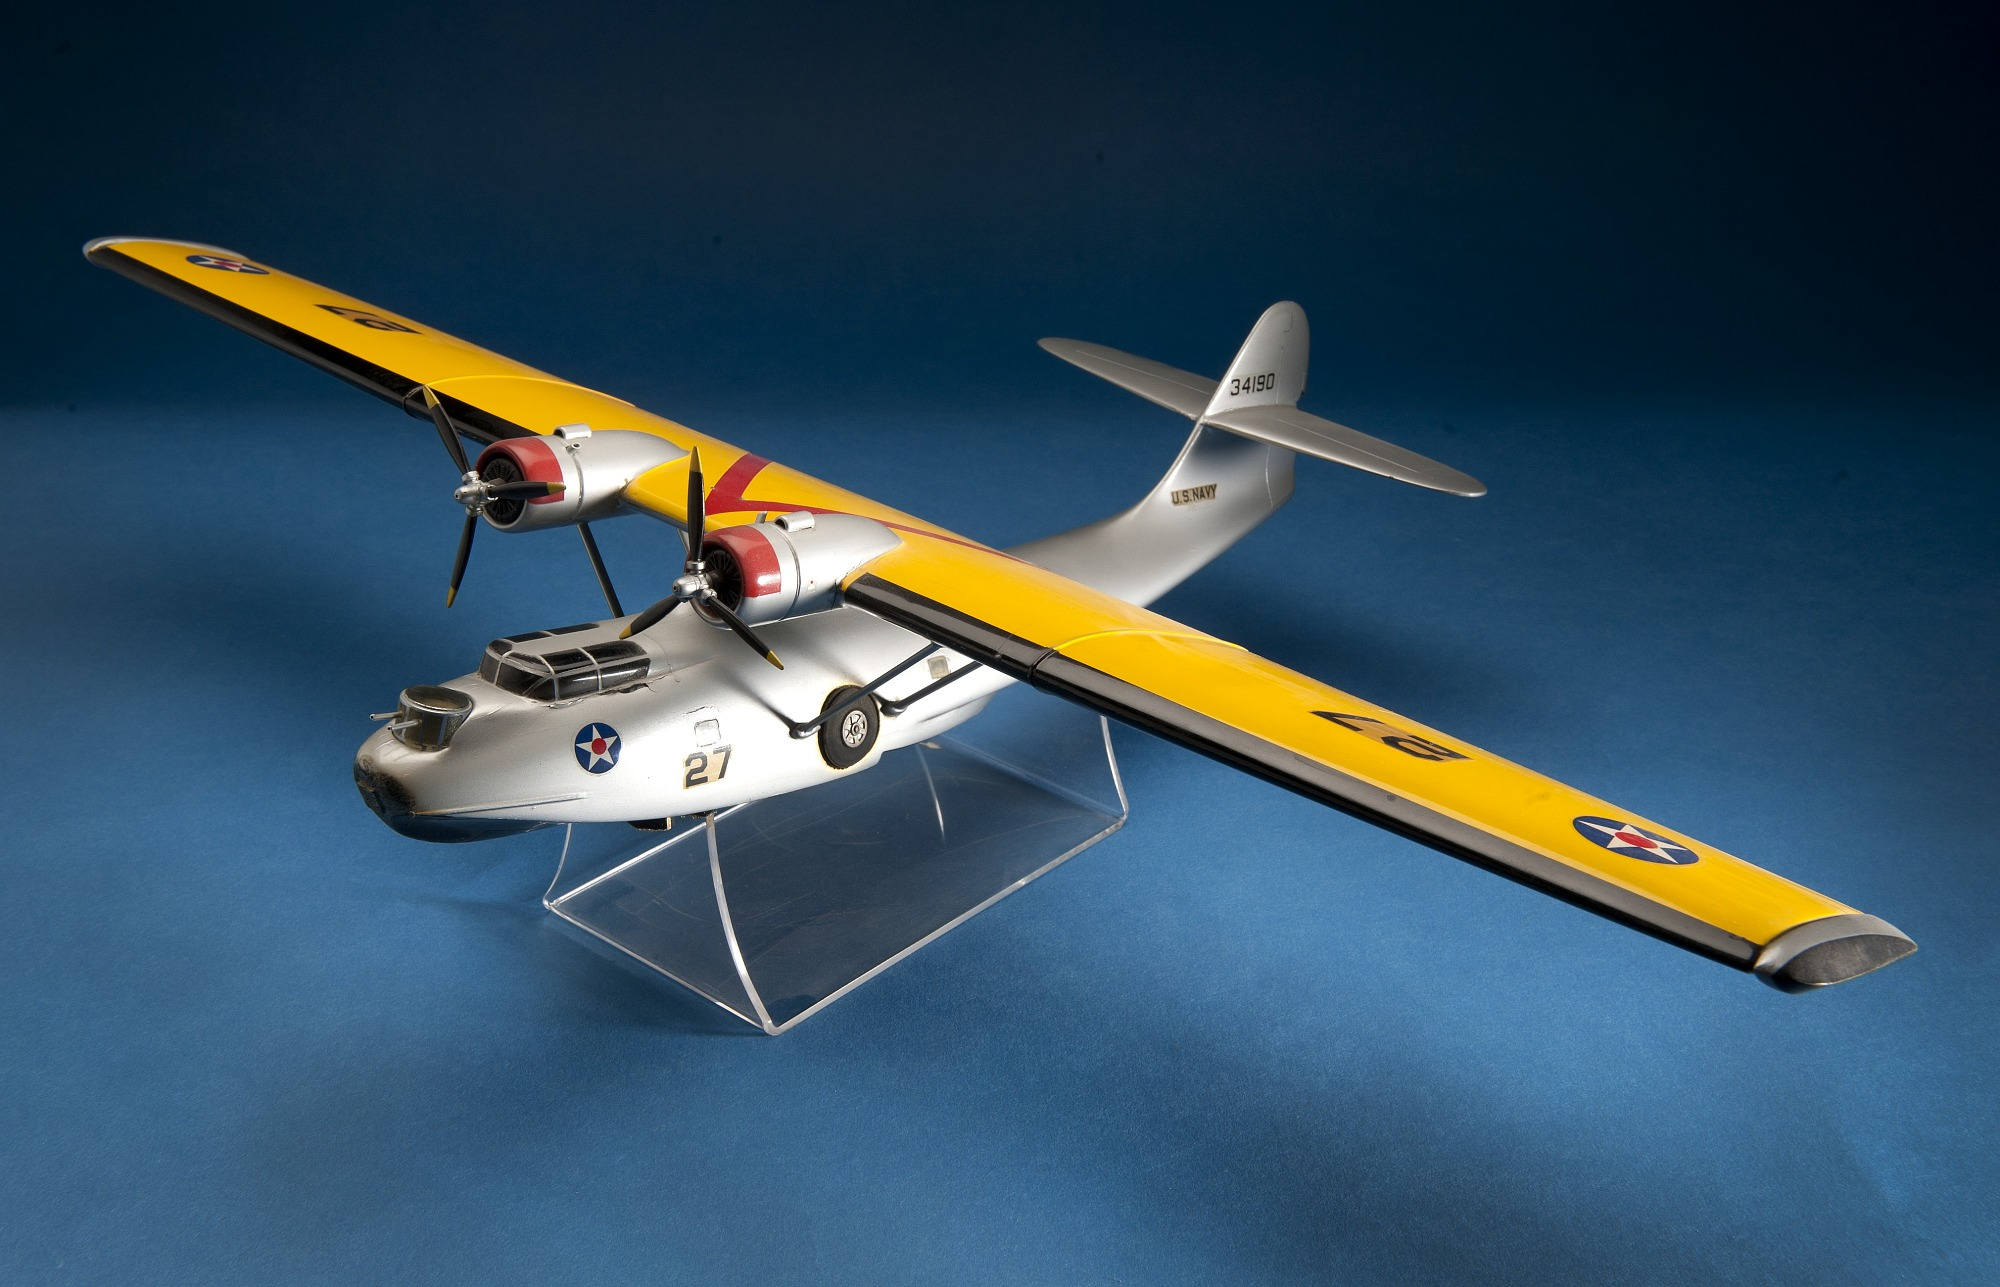 Image of : Model, Static, Consolidated PBY-5 Catalina